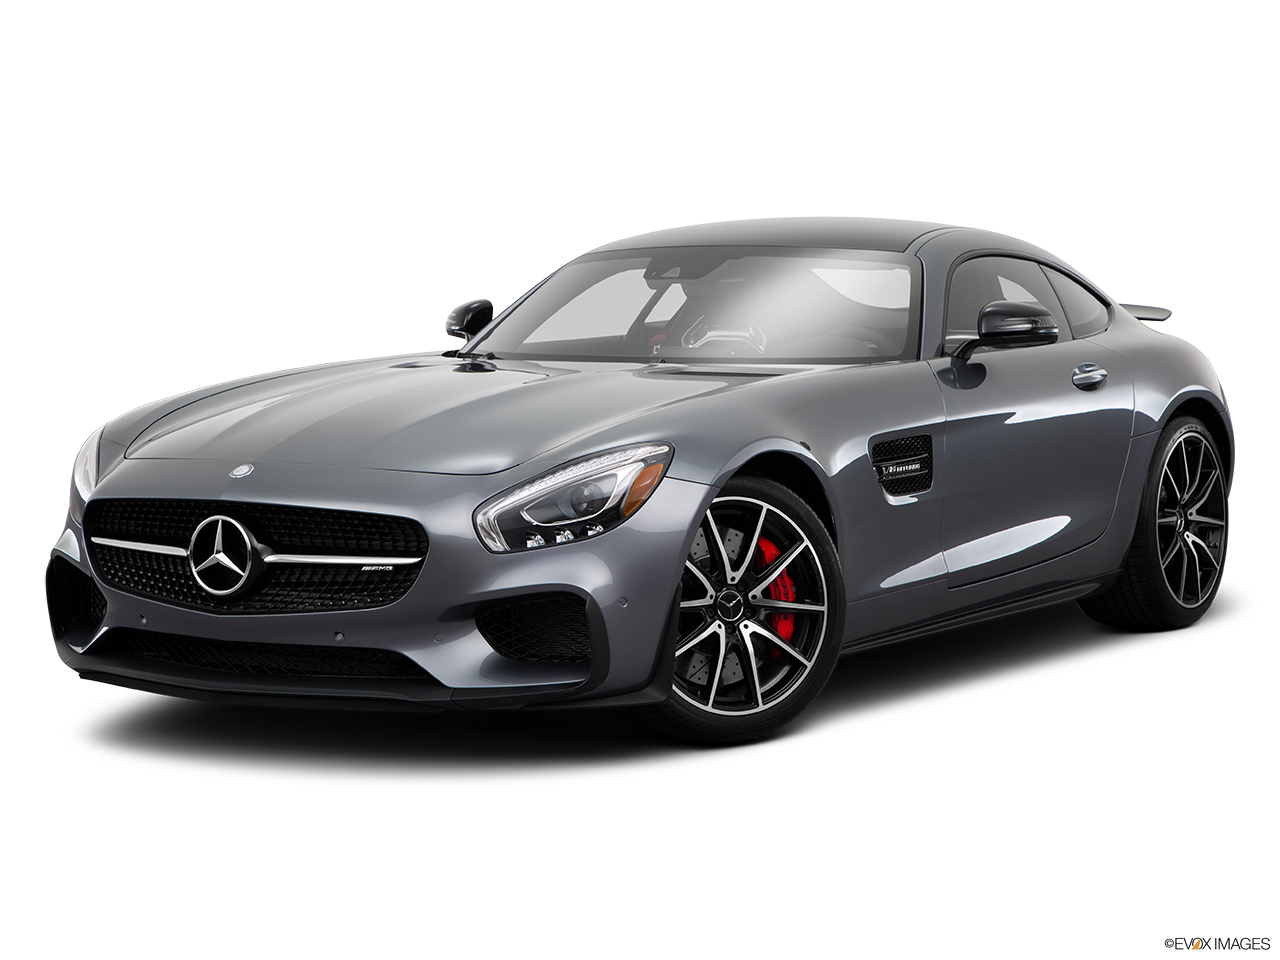 Car pictures list for mercedes benz amg gt 2016 s uae for Mercedes benz list of cars